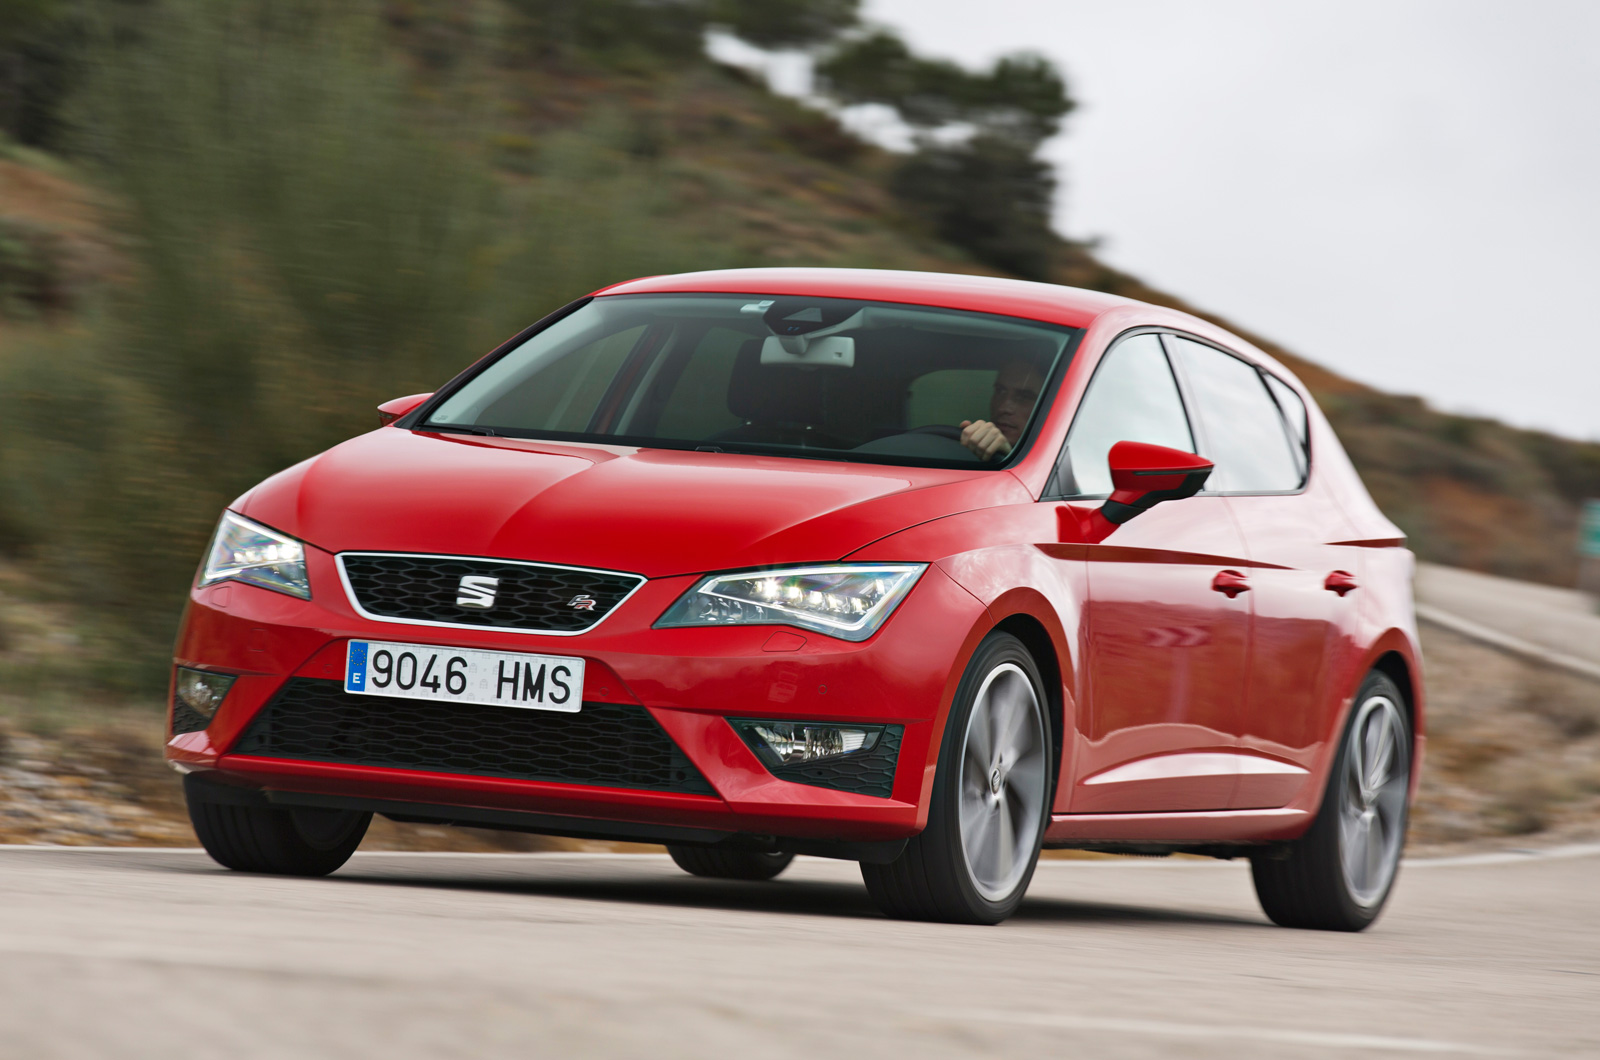 first drive review 2013 seat leon fr 2 0 tdi autocar. Black Bedroom Furniture Sets. Home Design Ideas